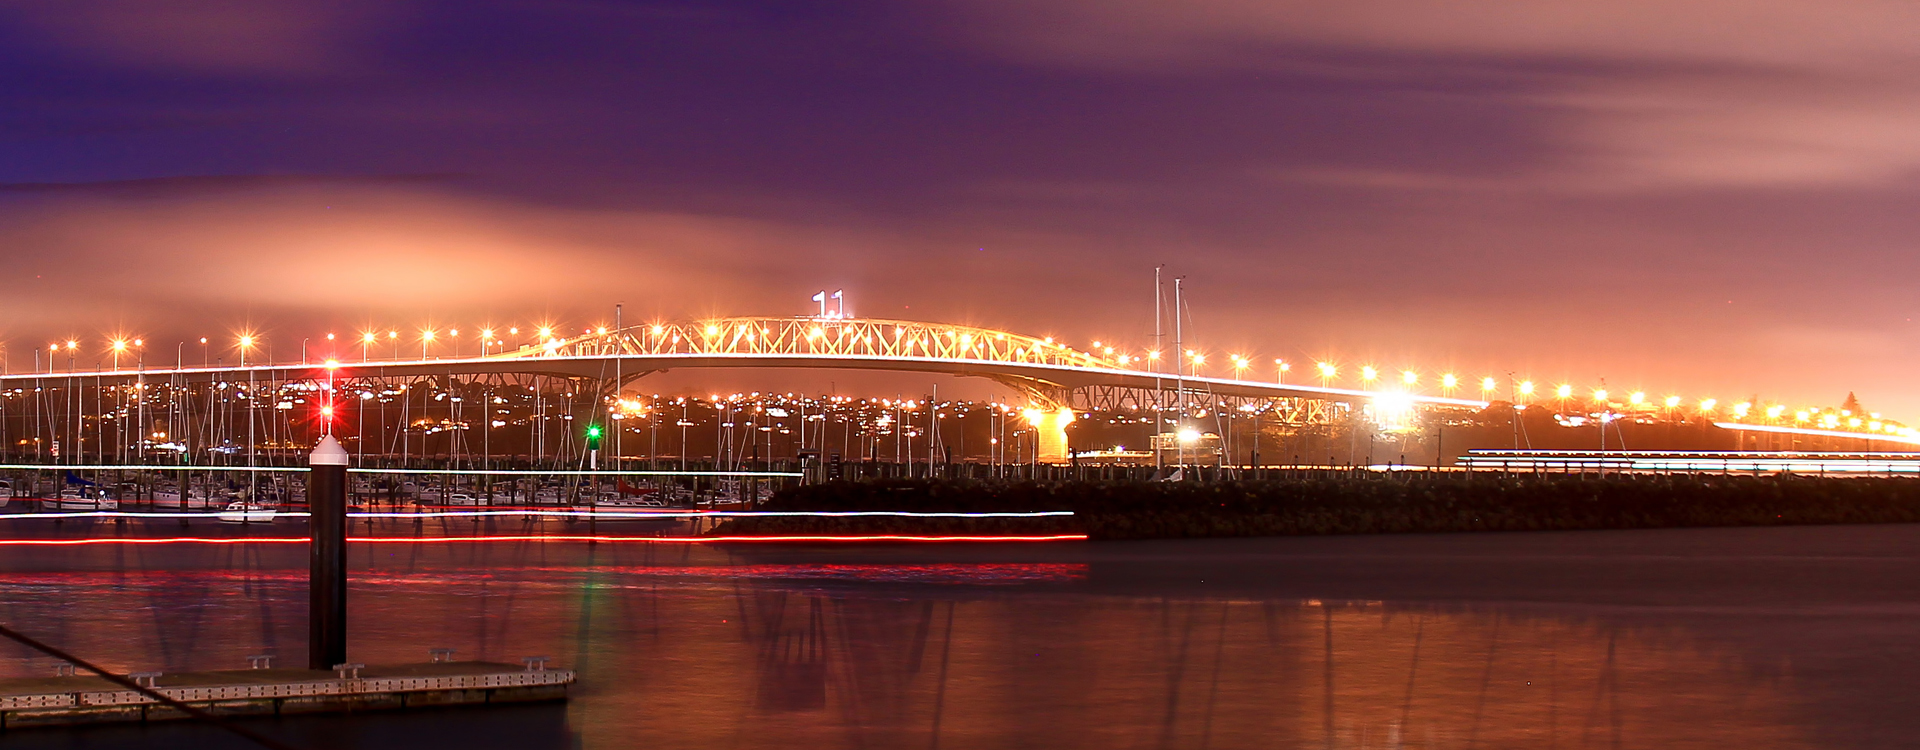 bnr-auckland-harbour-bridge-night